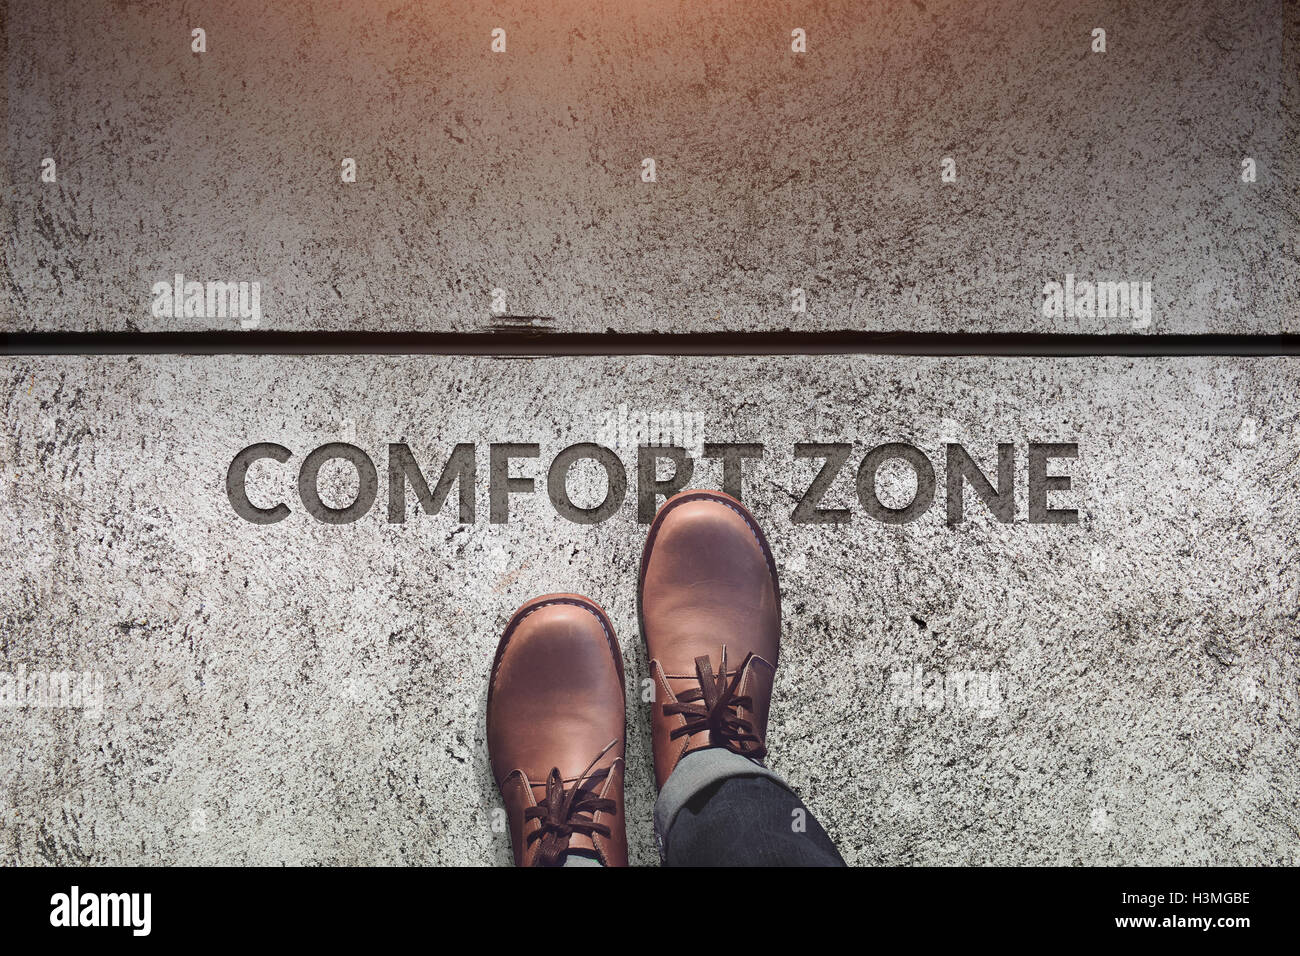 Comfort Zone Concept, Male with Leather Shoes Steps over a word : Comfort Zone with line on Concrete Floor, Top view Stock Photo